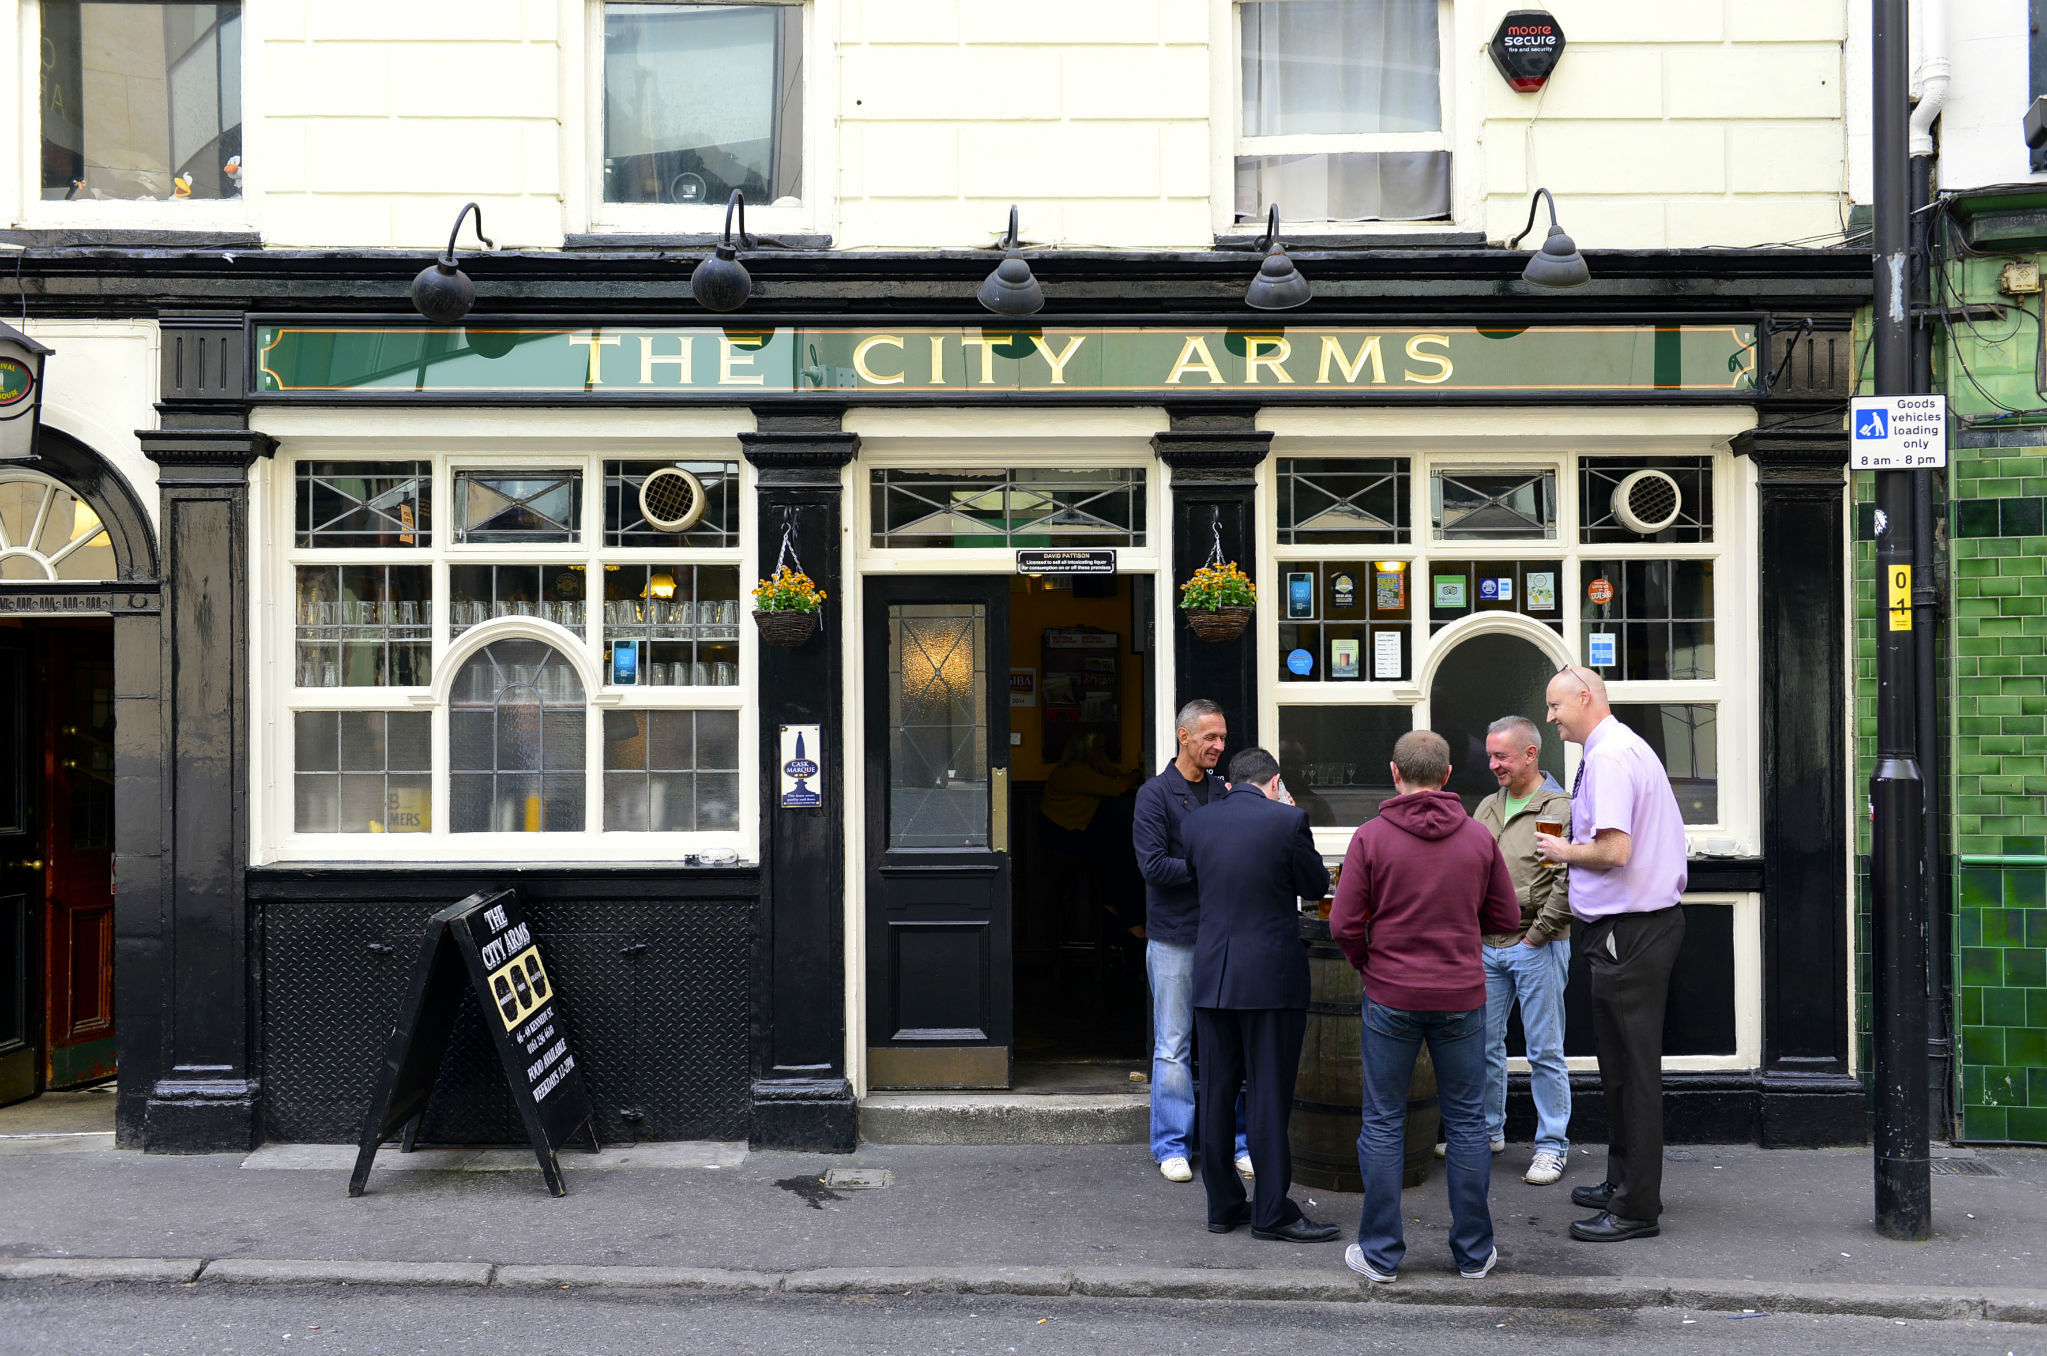 The City Arms, Manchester